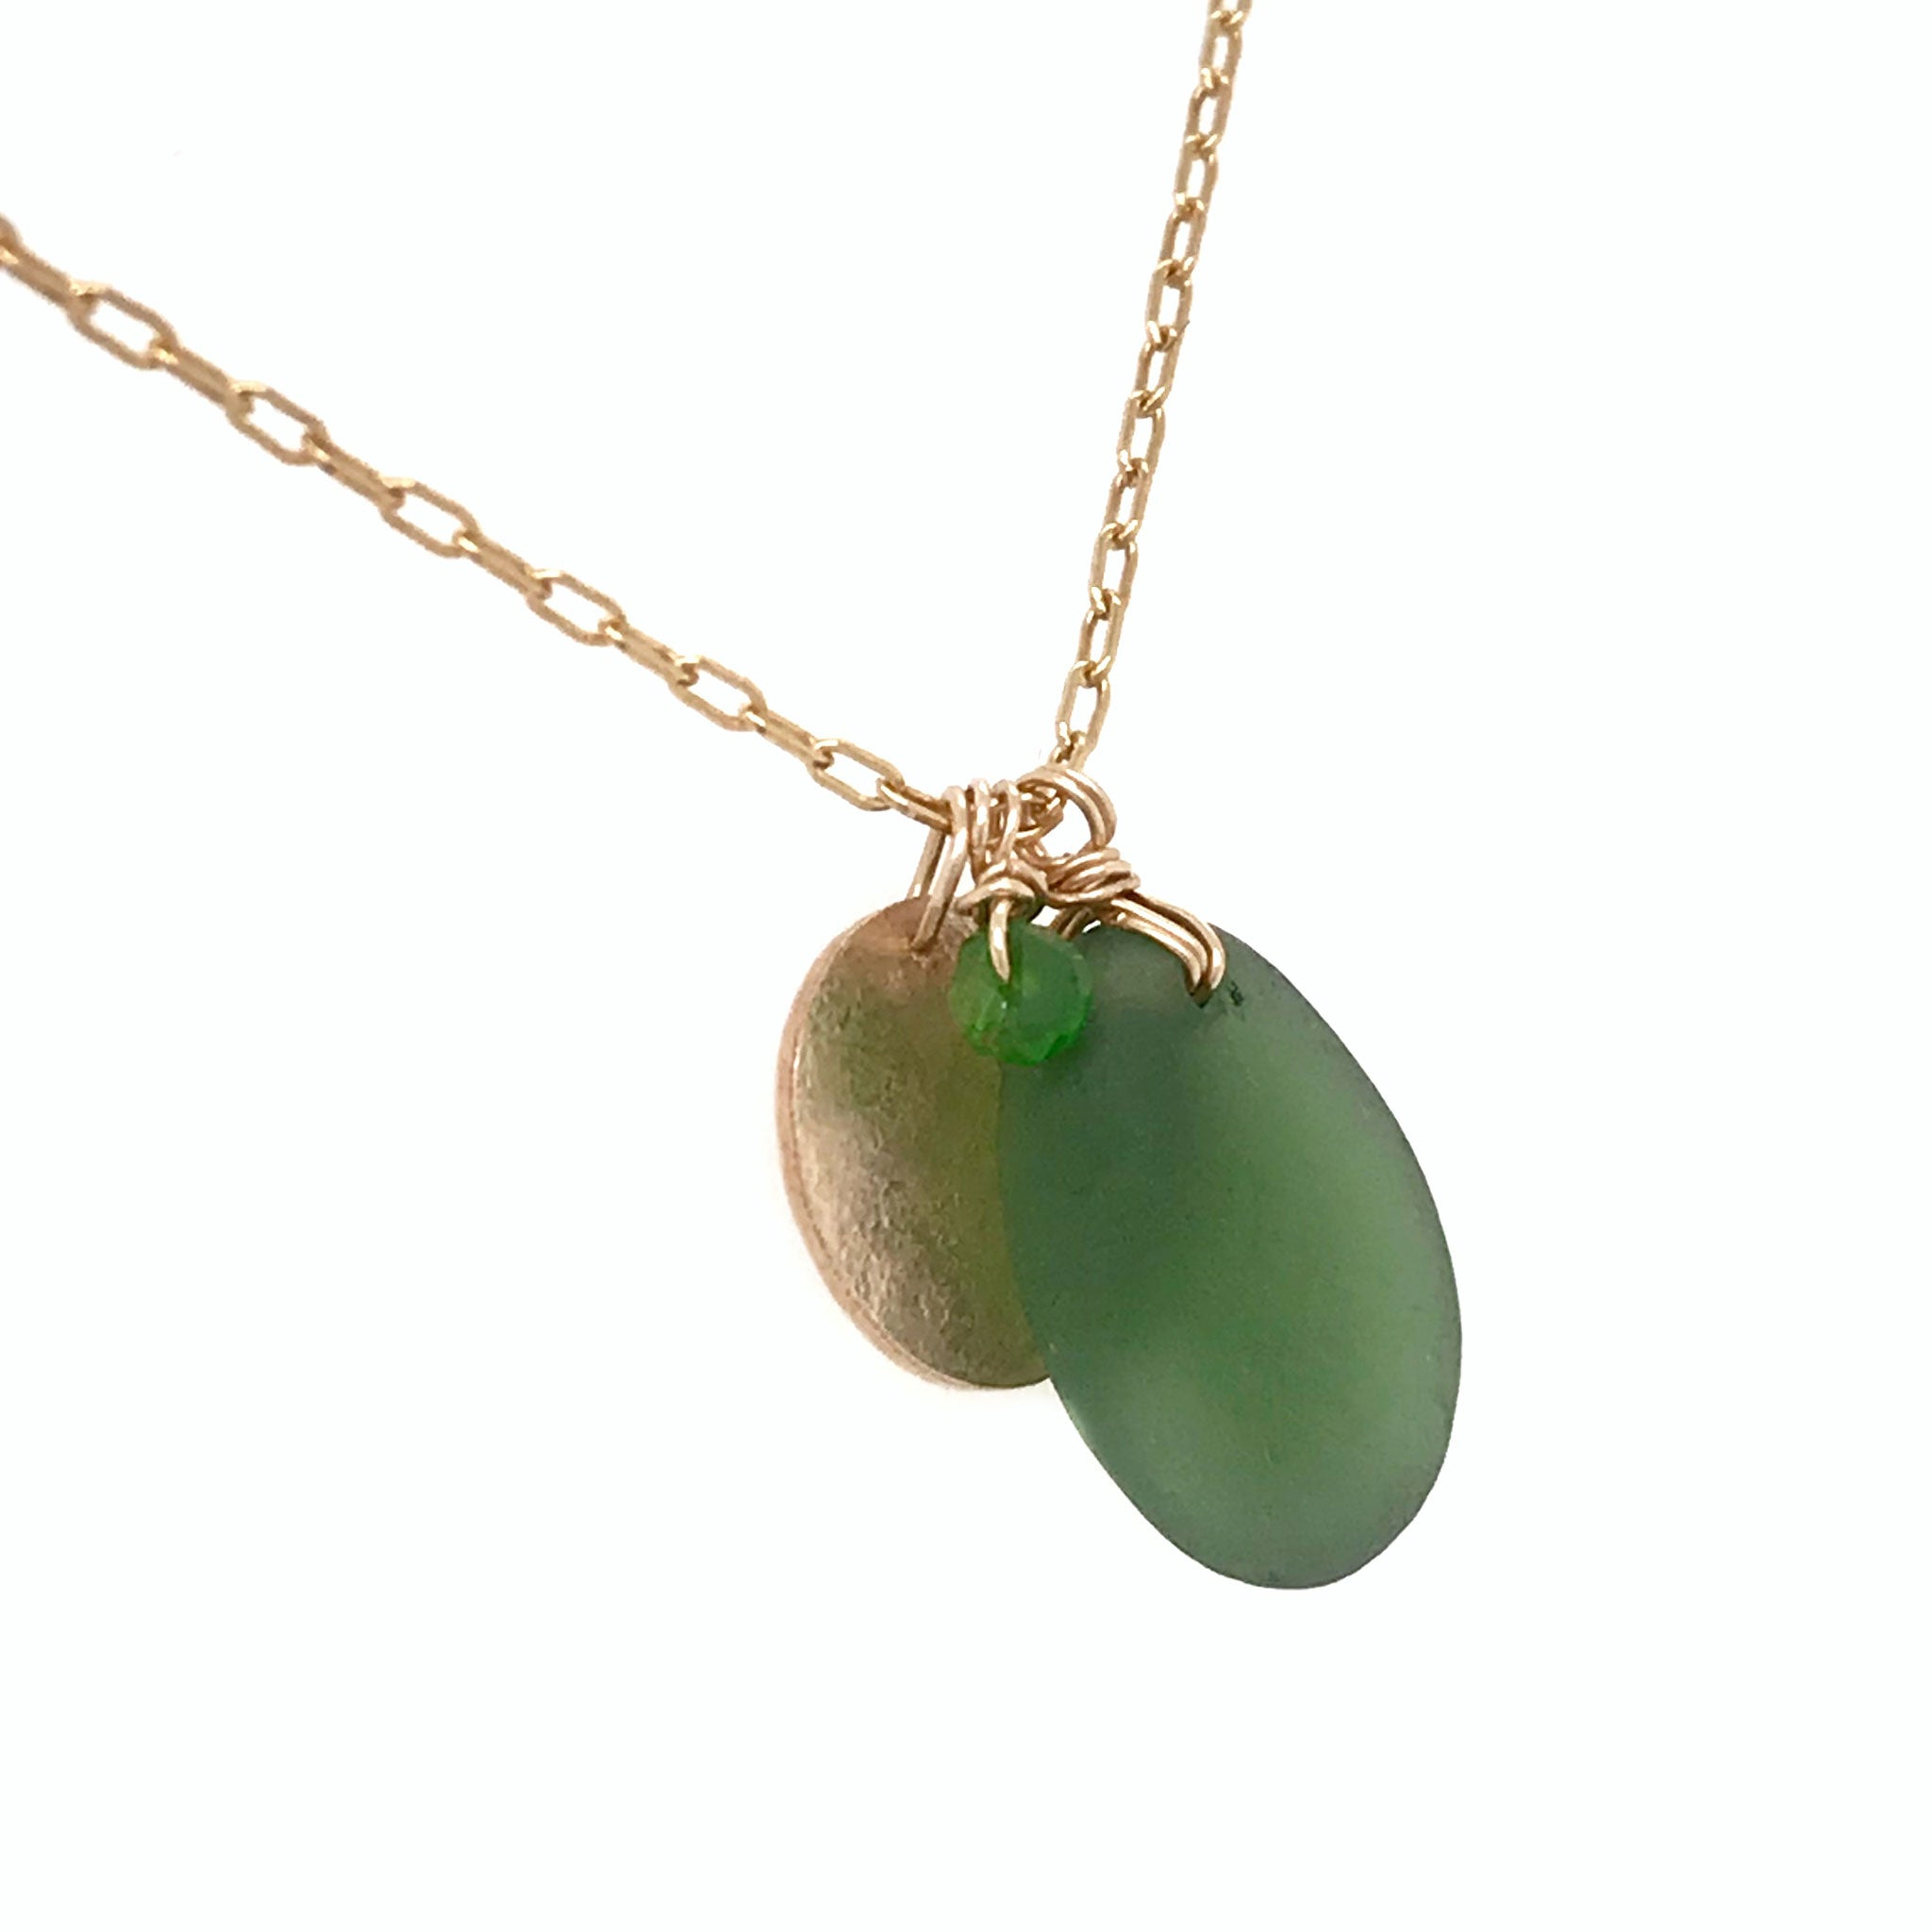 gold charm necklace with green seaglass pendant and gold disc kriket Broadhurst jewellery